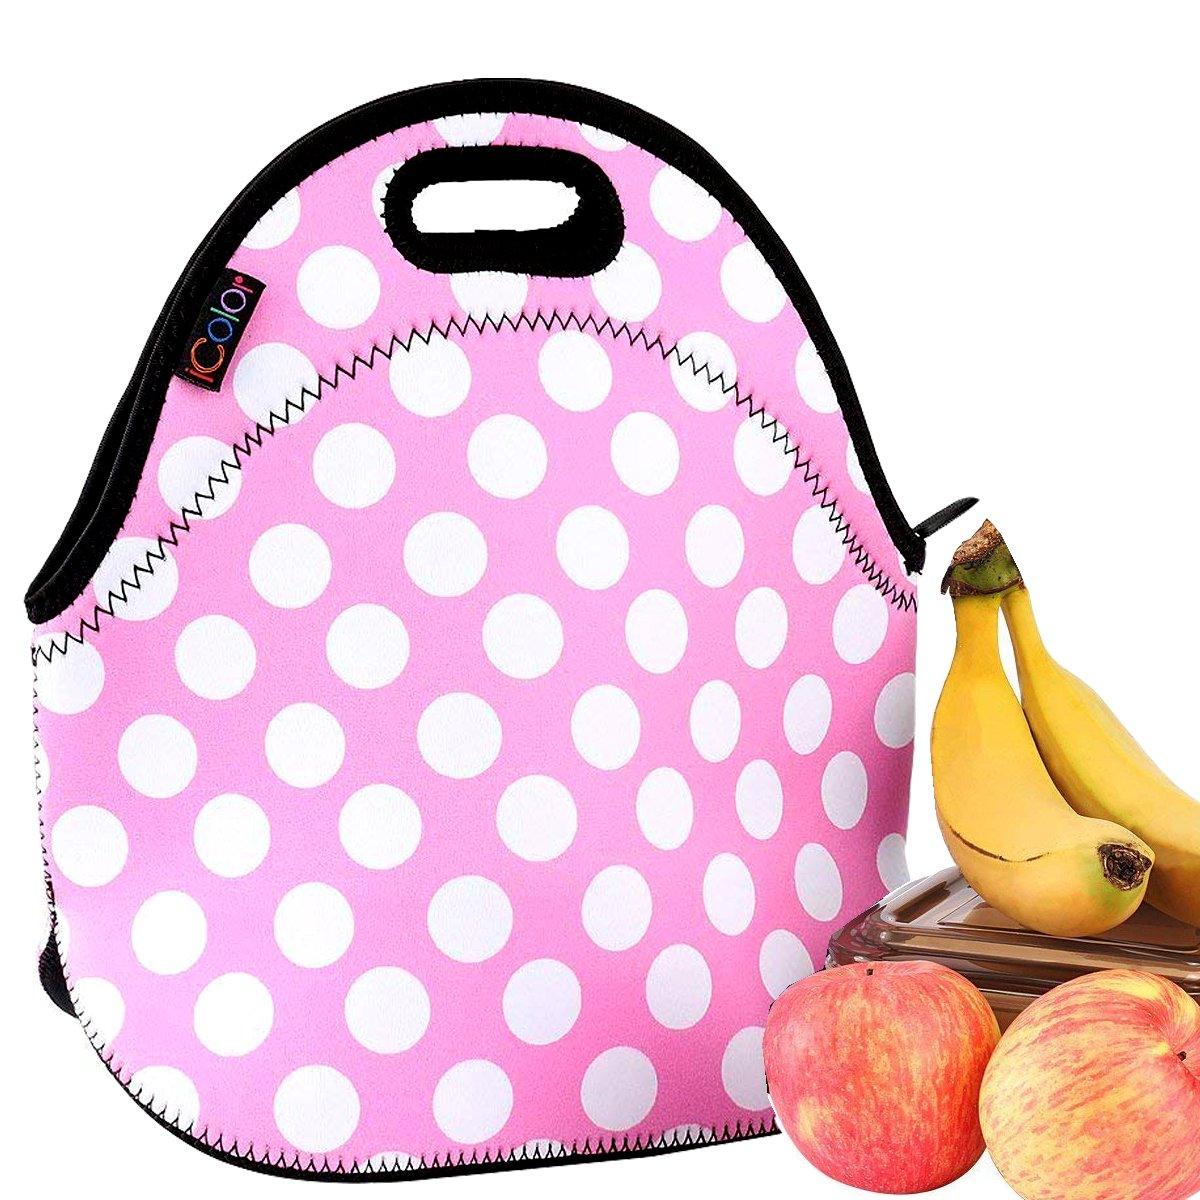 iColor Pink Polka Dots Insulated Lunch Tote Bag Cooler Box Neoprene lunchbox baby bag Handbag Case YLB-001